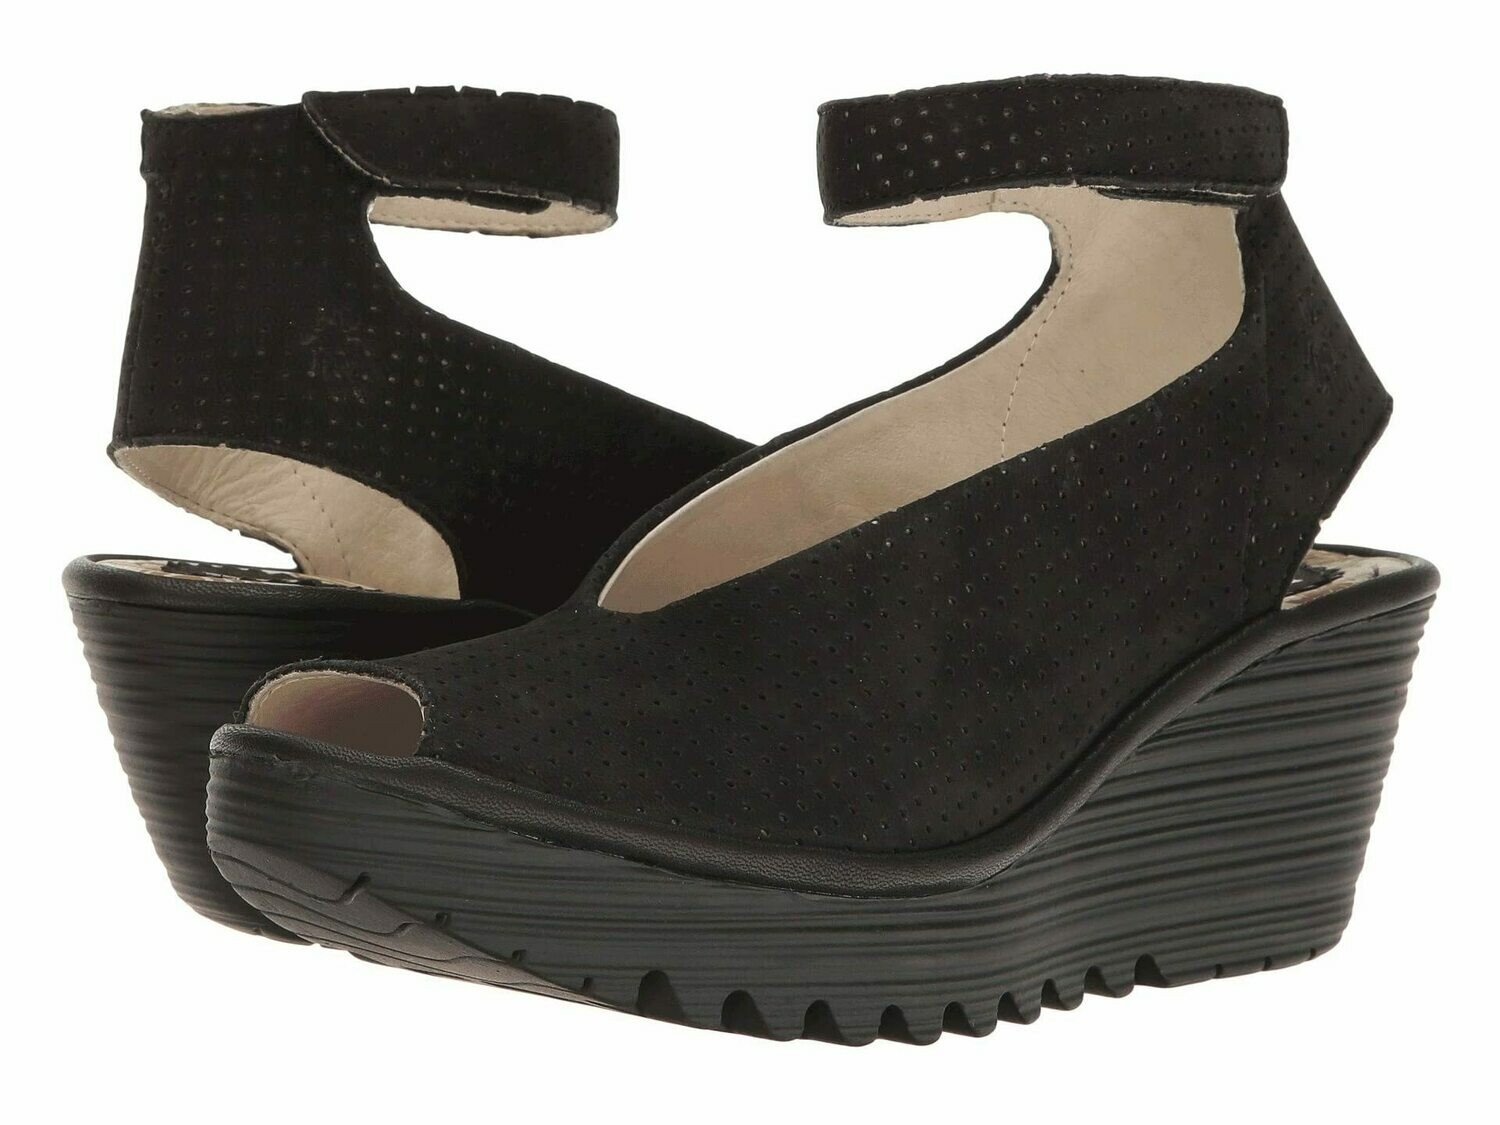 Yala Perf Black Wedge Sandal in Wide